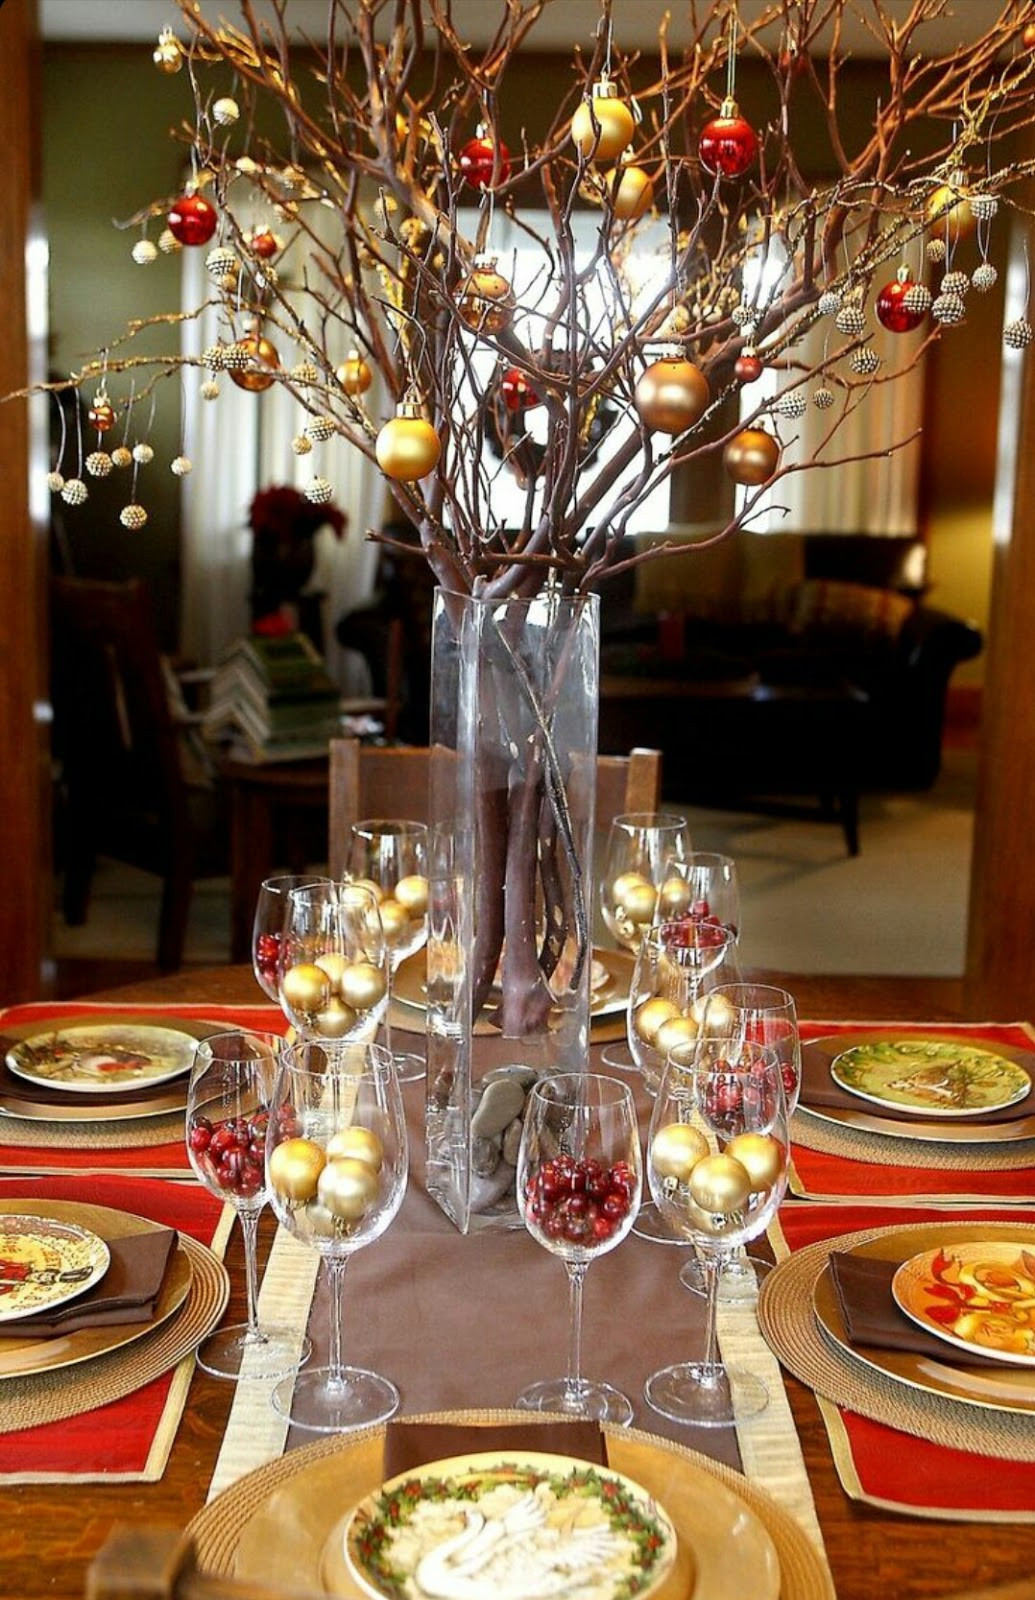 Best ideas about DIY Tabletop Ideas . Save or Pin 50 Best DIY Christmas Table Decoration Ideas for 2019 Now.